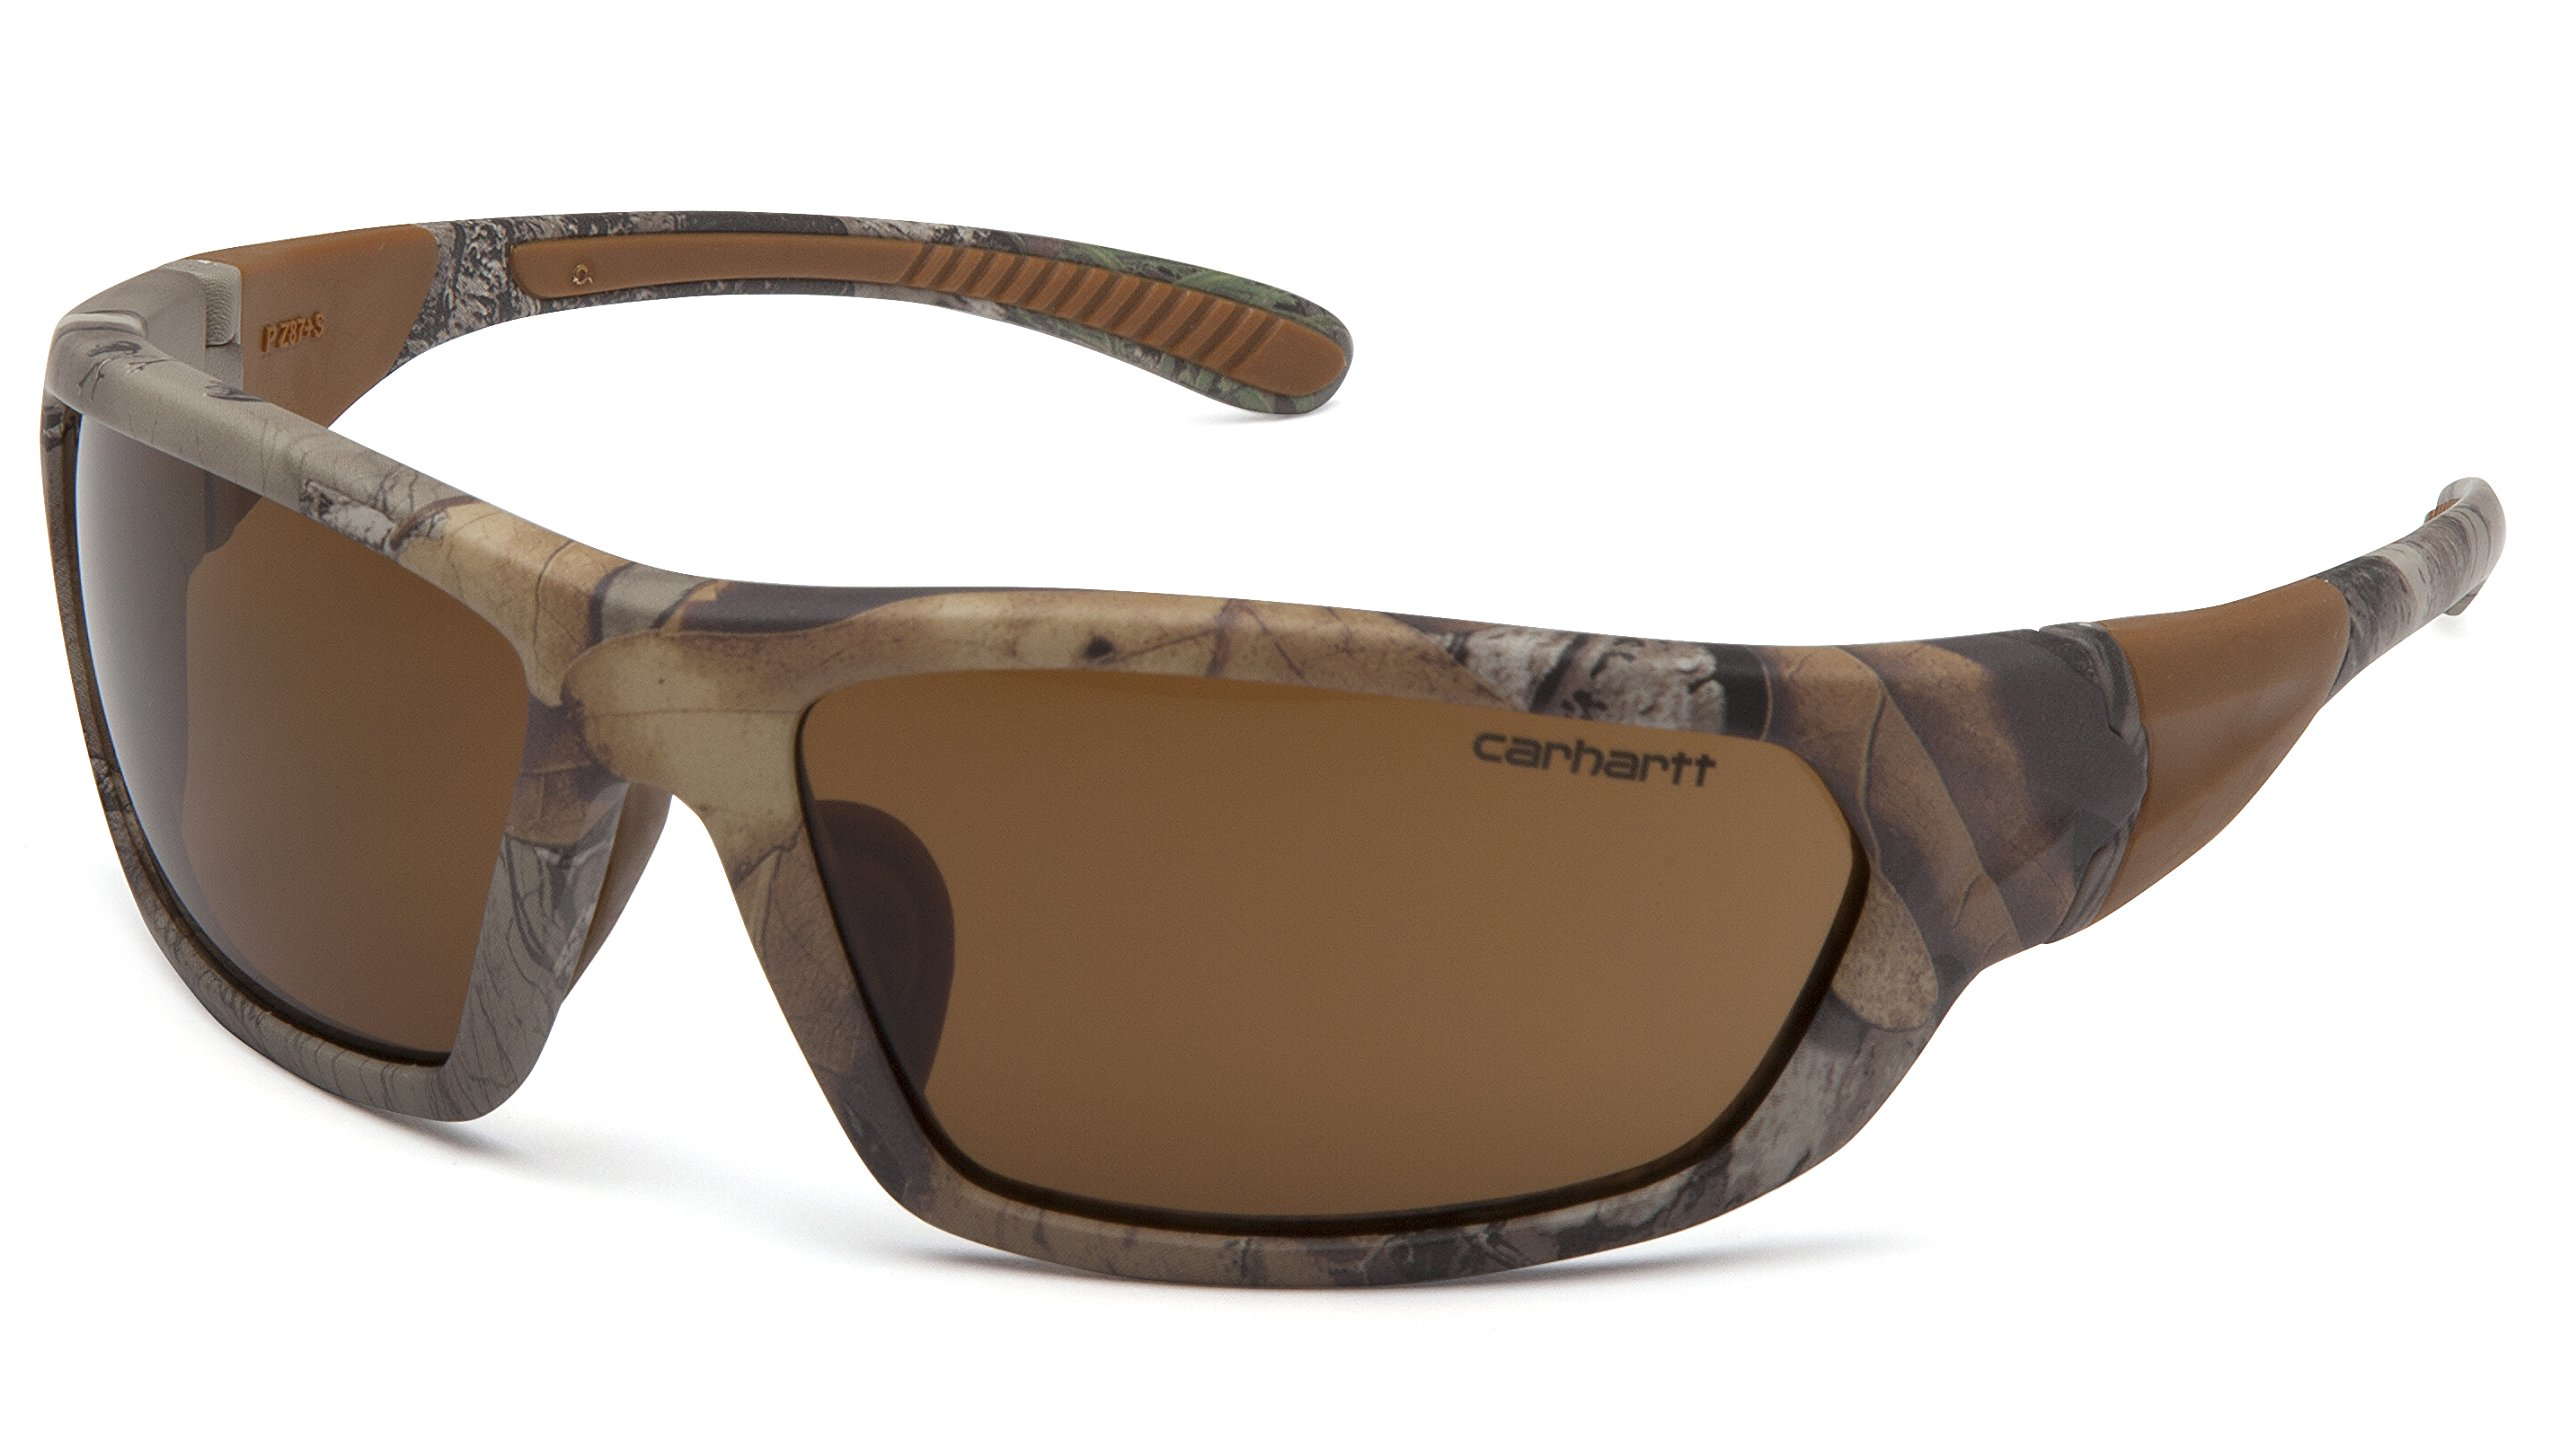 Carhartt CHRT218DCC Carbondale SAFETY Glasses, Realtree Xtra Frame, Bronze Lens by Carhartt